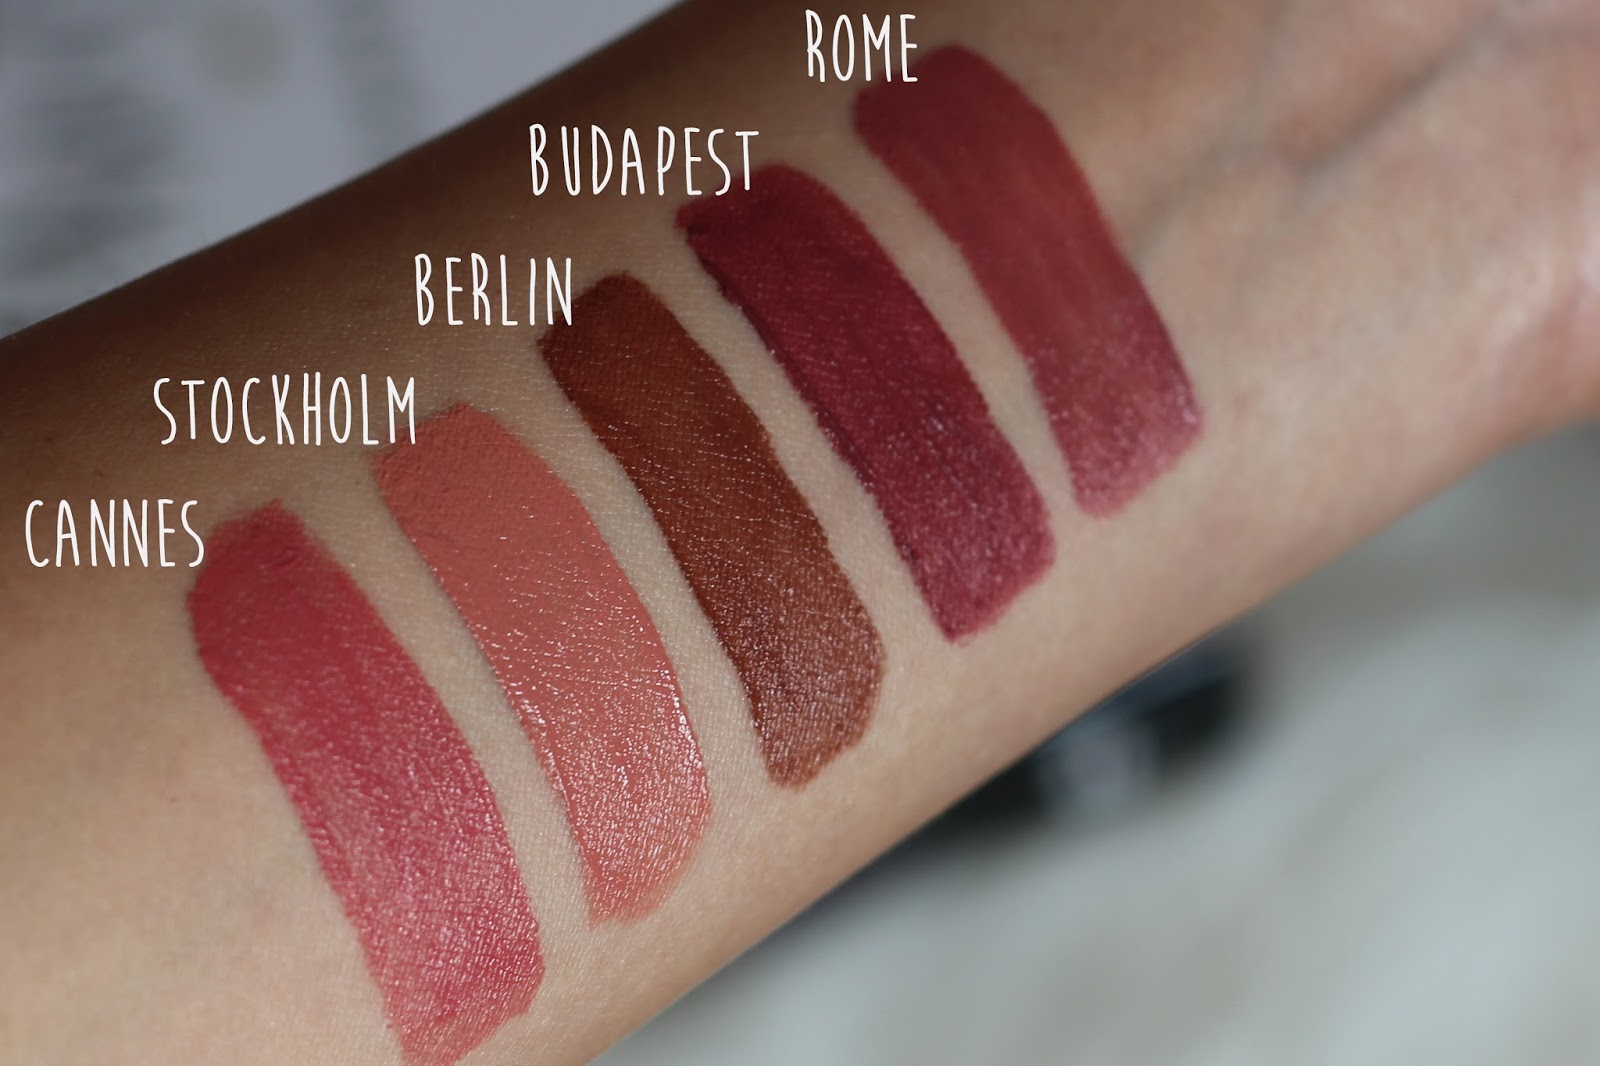 NYX Professional Makeup Soft Matte Lip Cream in Cannes, Stockholm, Berlin, Budapest and Rome swatches and review